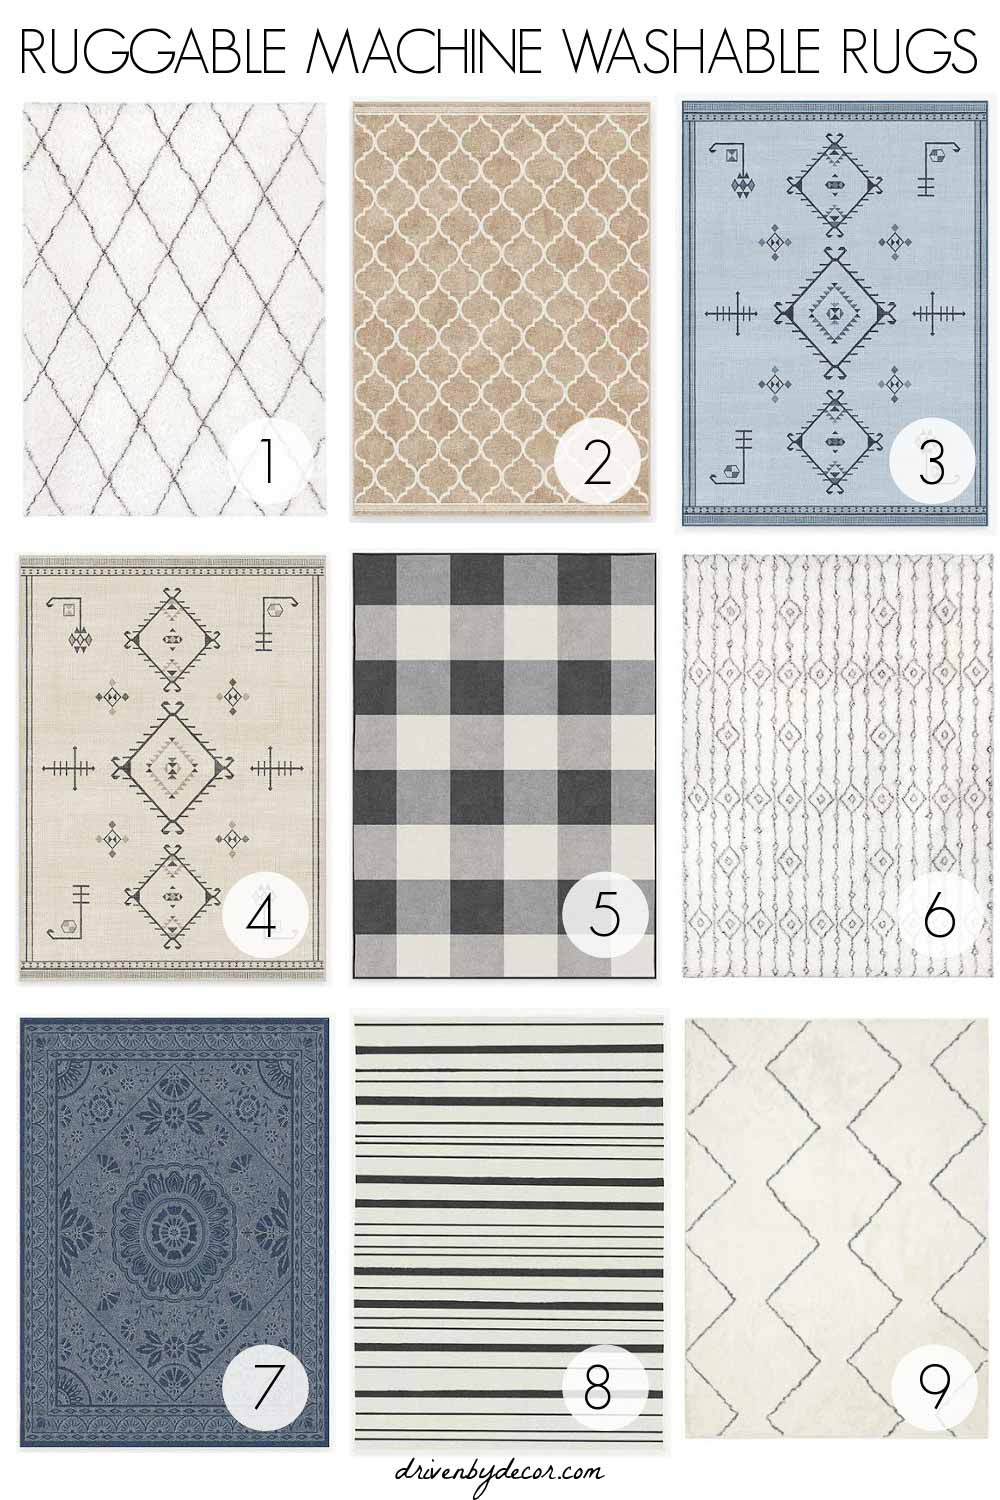 Ruggable machine washable rugs - these are my favorites!